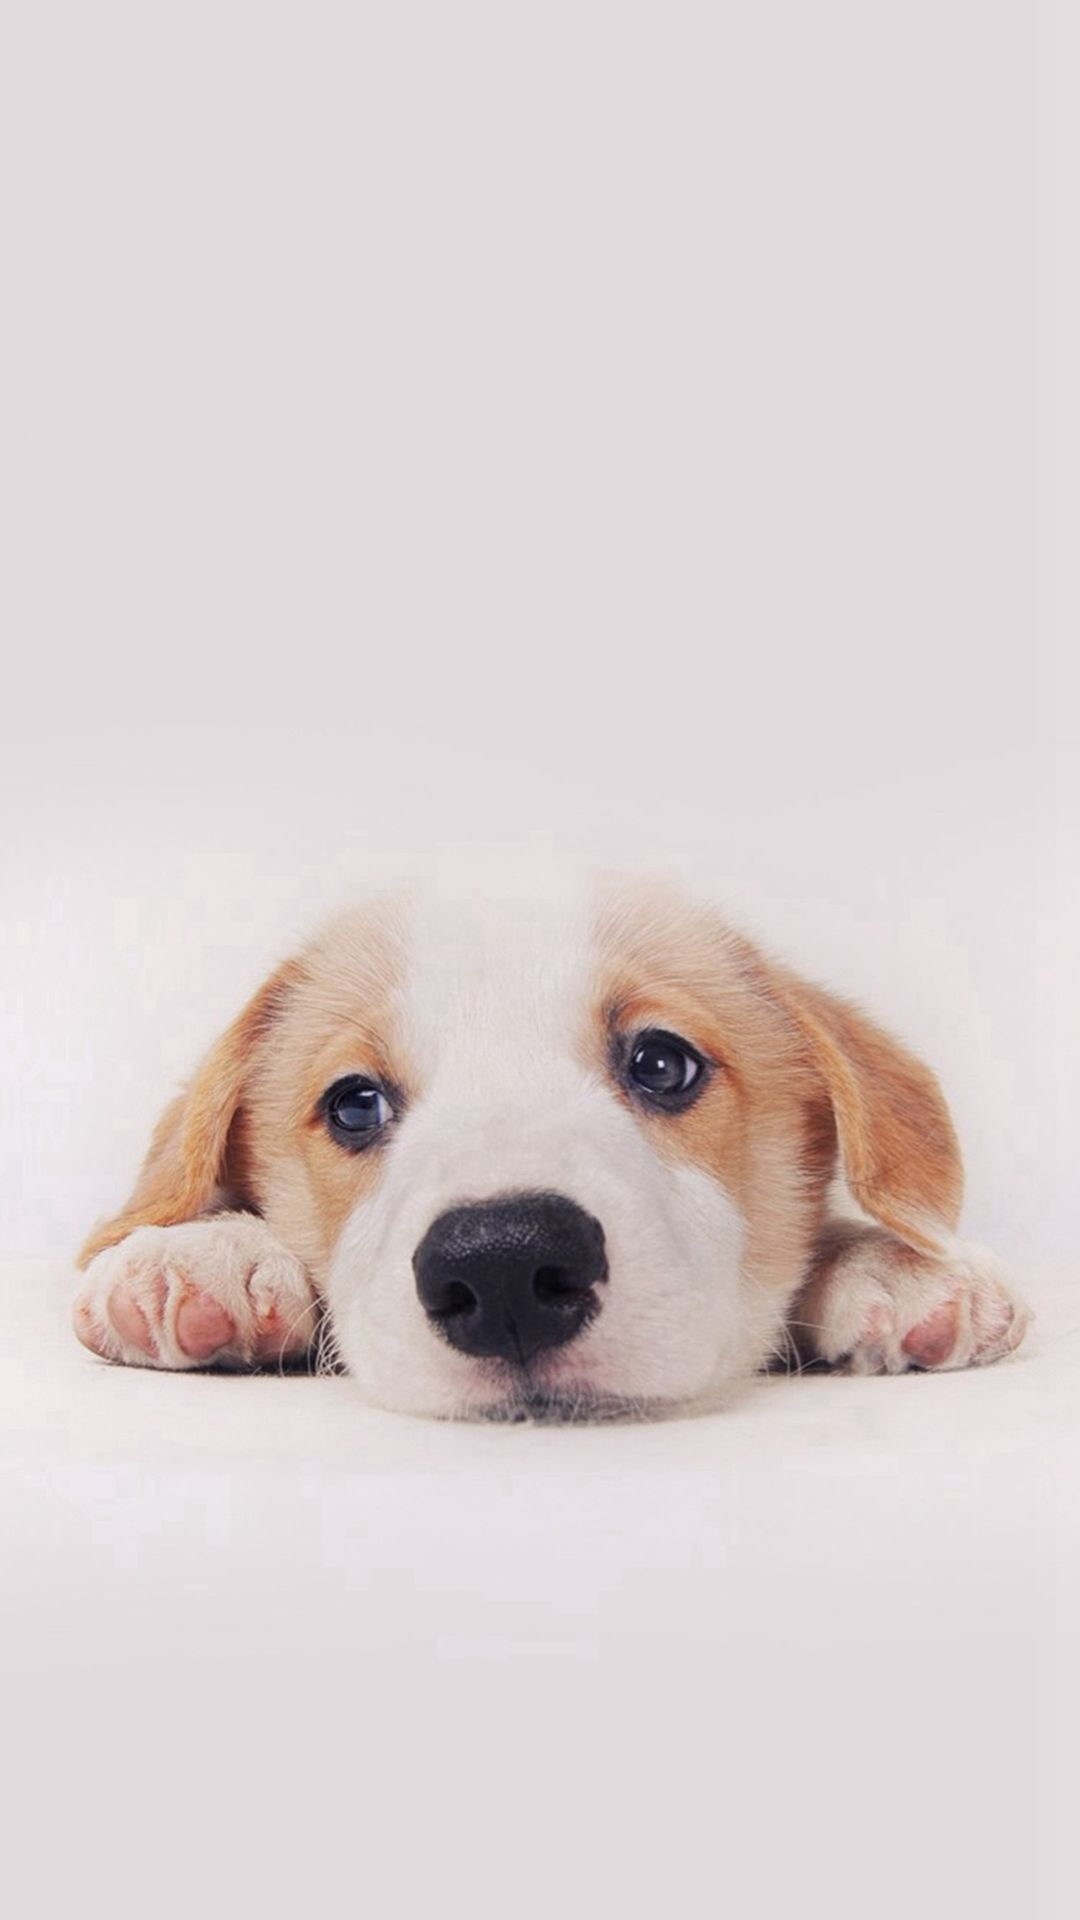 iPhone Wallpapers HD from ilikewallpaper.net,  Cute Puppy Dog Pet #iPhone #6 #plus #wallpaper